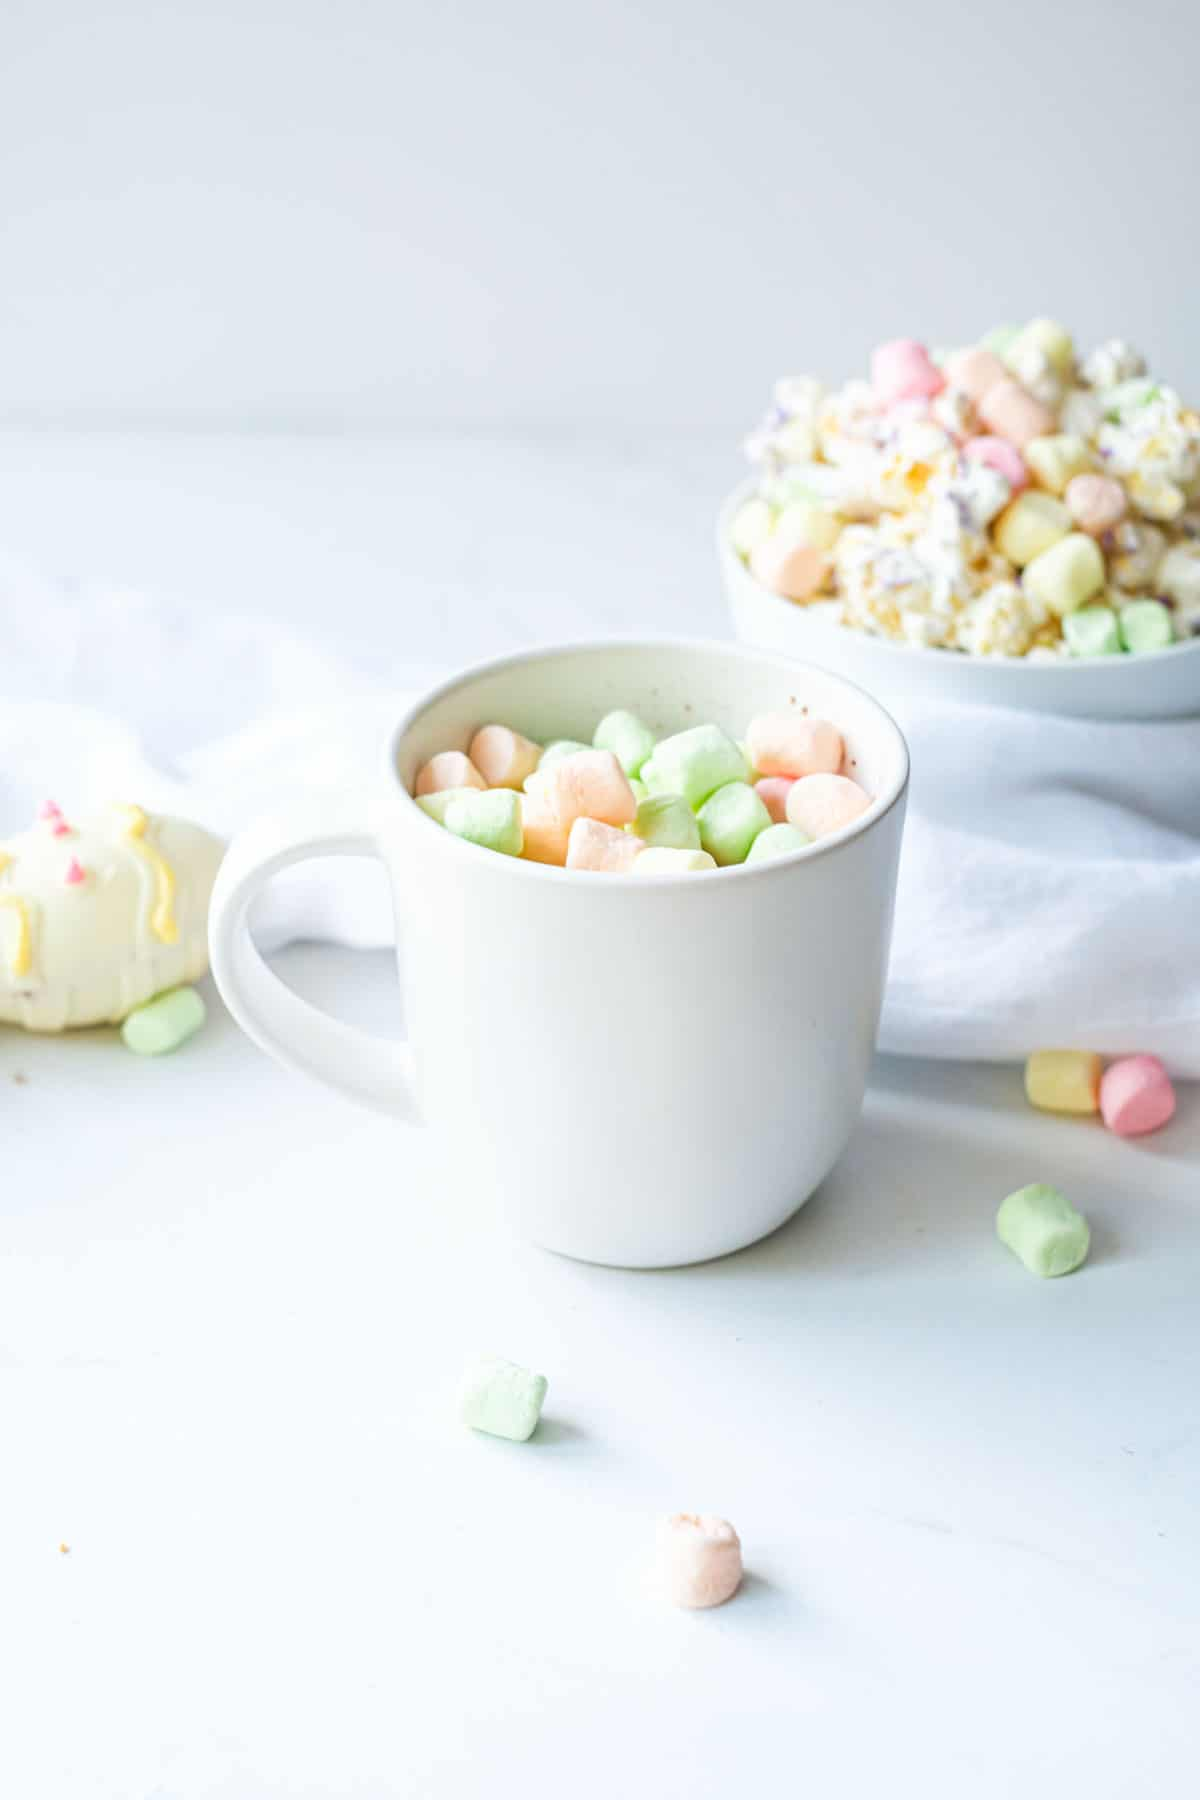 one white mug next to a completed Easter hot chocolate bomb and bowl filled with colored marshmallows